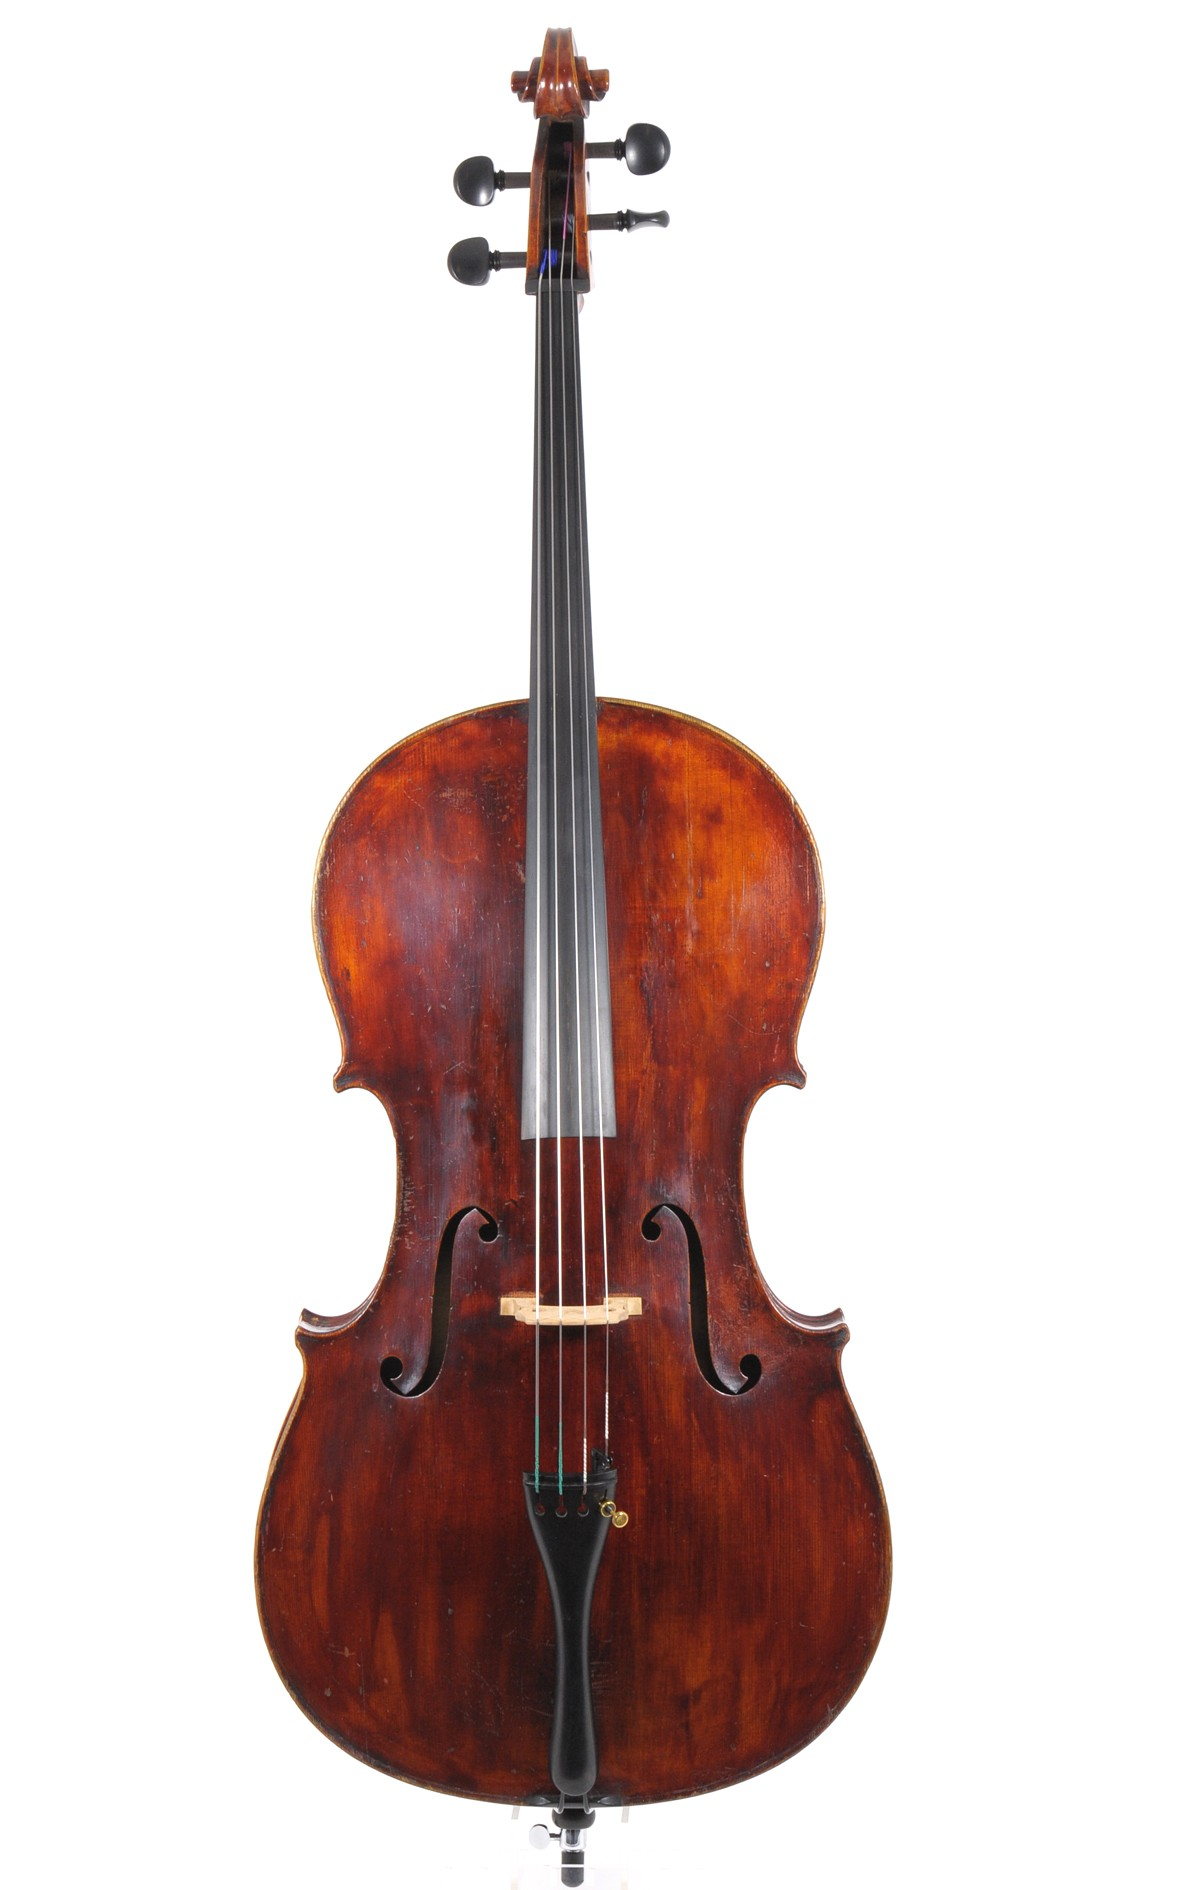 German cello by Eduard Tauscher, Markneukirchen